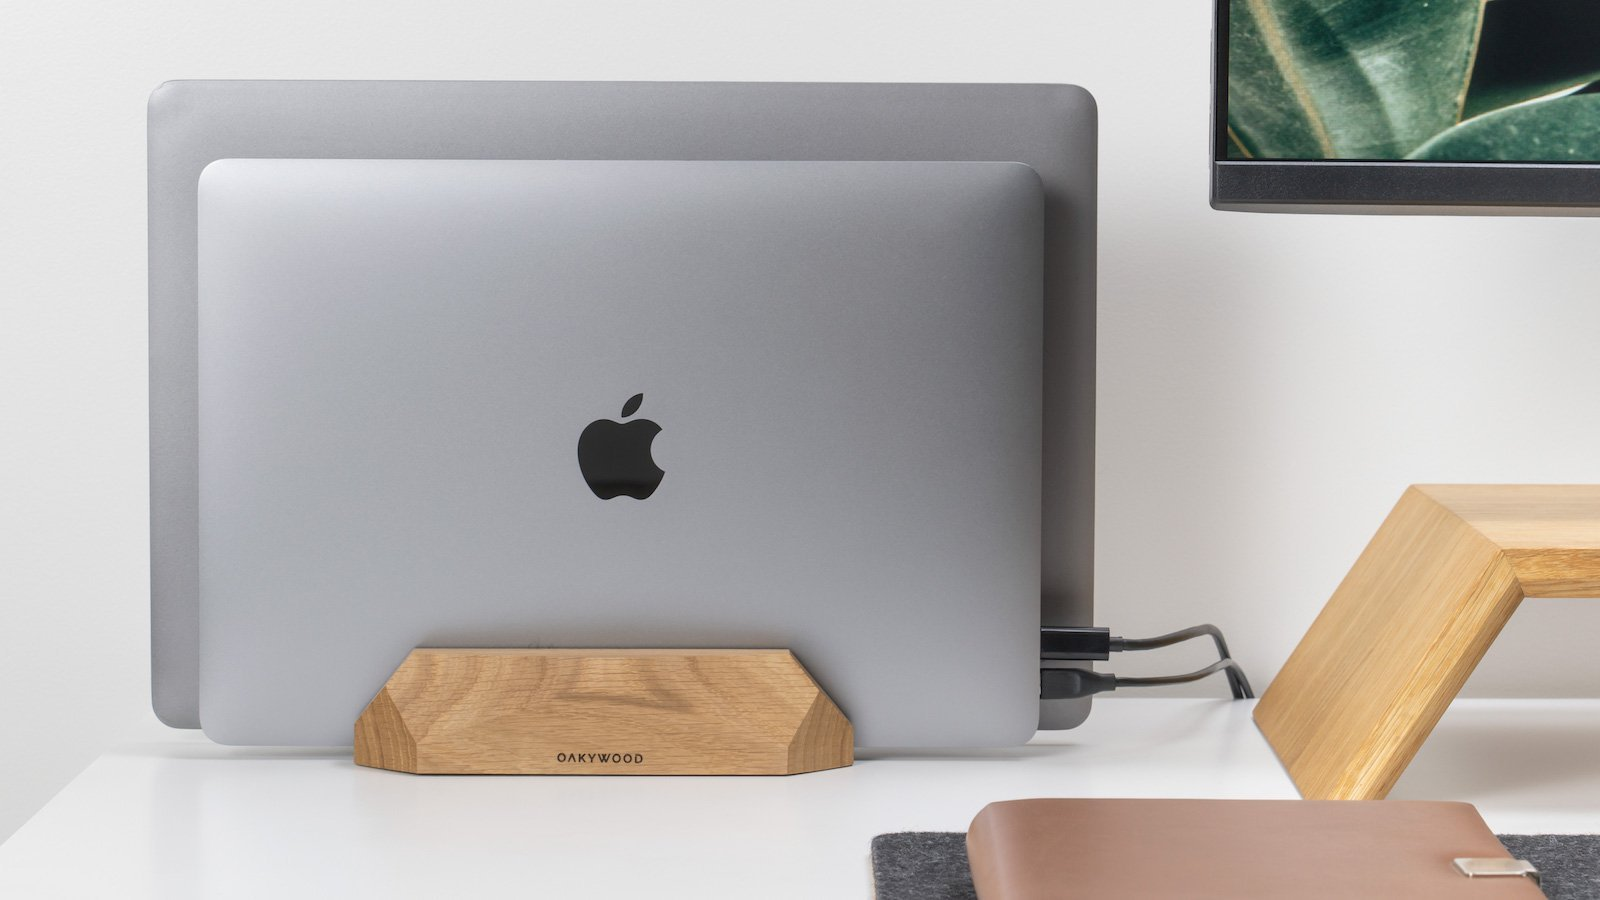 The best MacBook accessories for your workspace